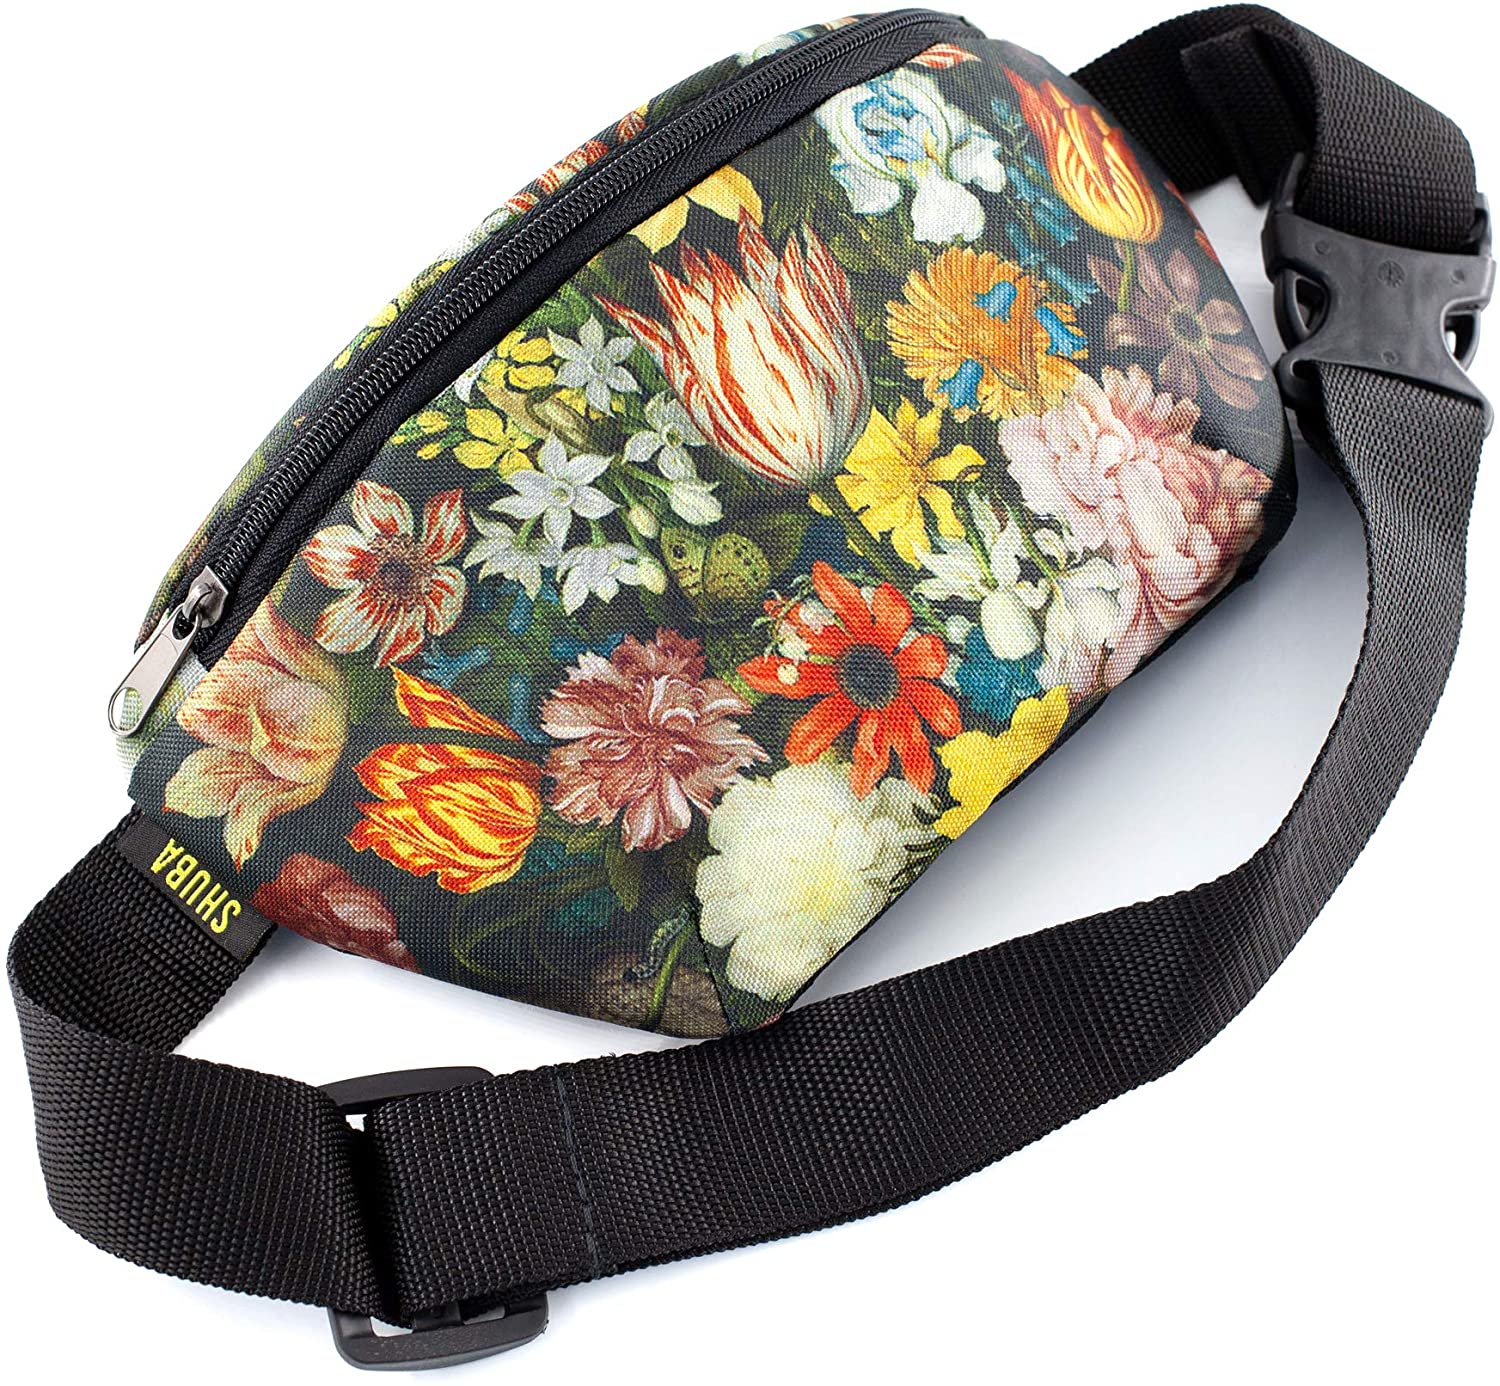 ShubaGiftFactory Art Bag Belt Funny Gifts Waist Packs, Waist Pocket, Masterpiece Gifts, Adjustable Belt Bag, Famous Art Canvas, for Travellers